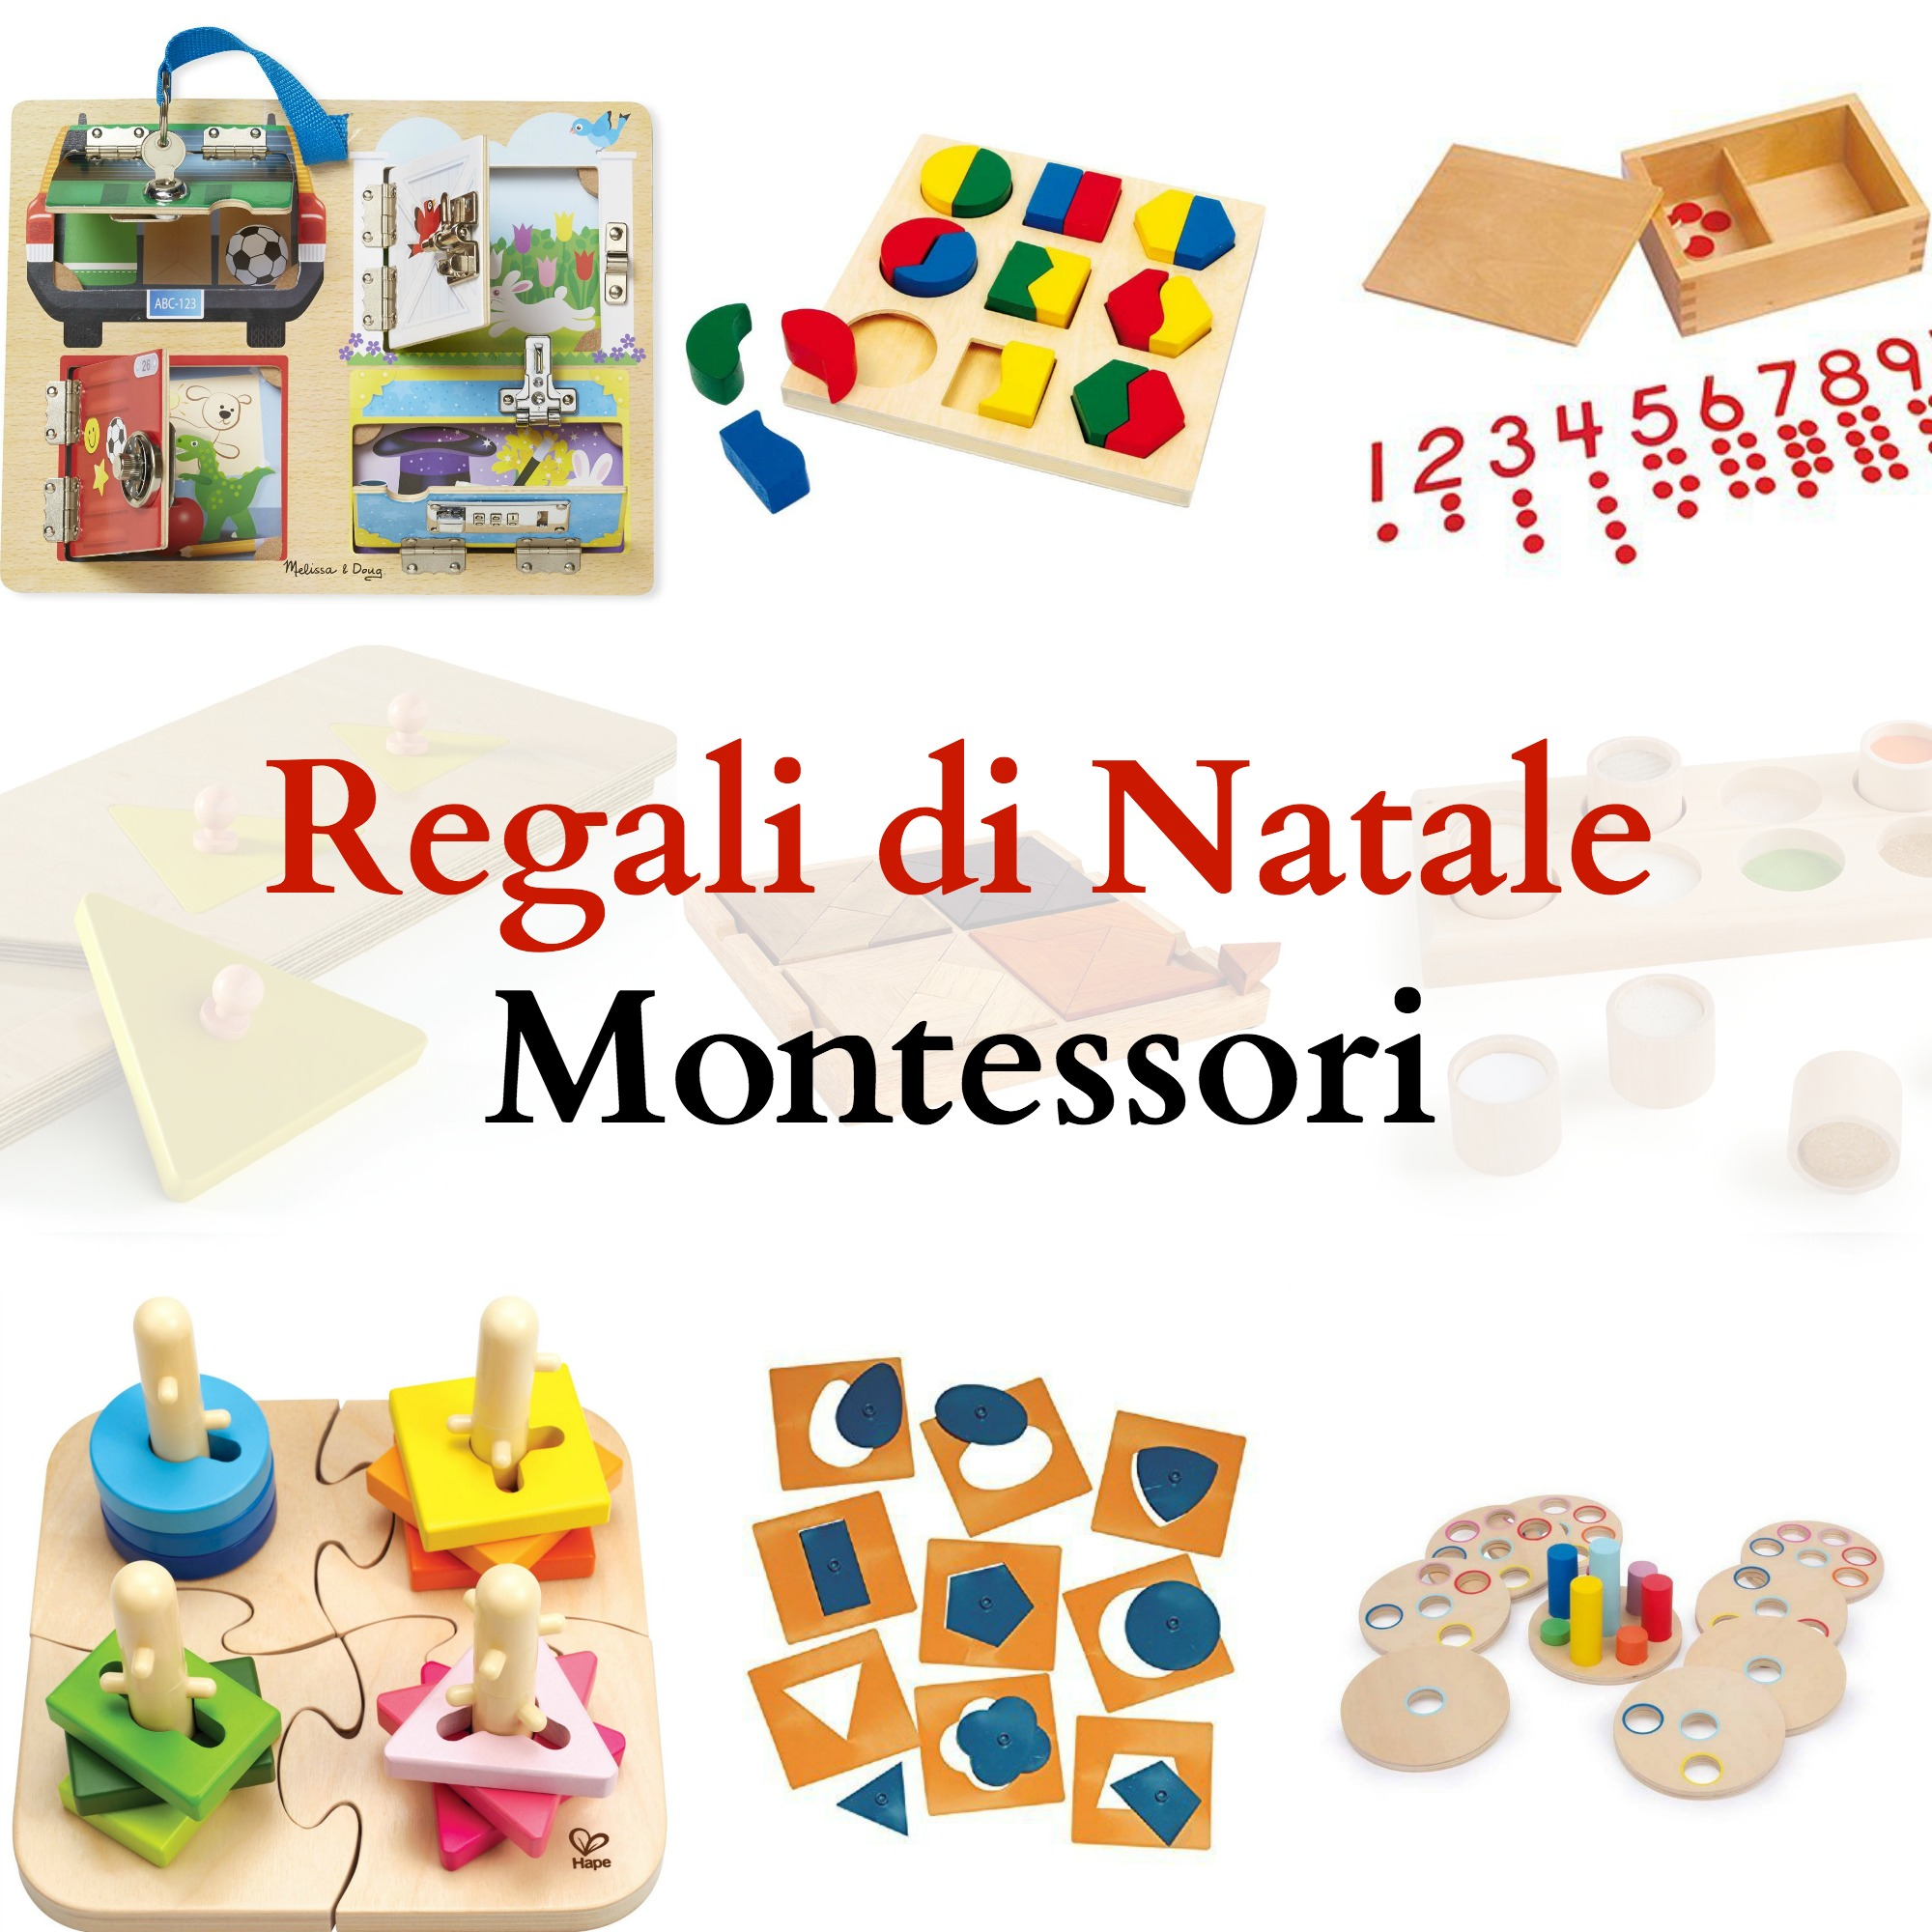 Regali di natale montessori babygreen for Idee regali